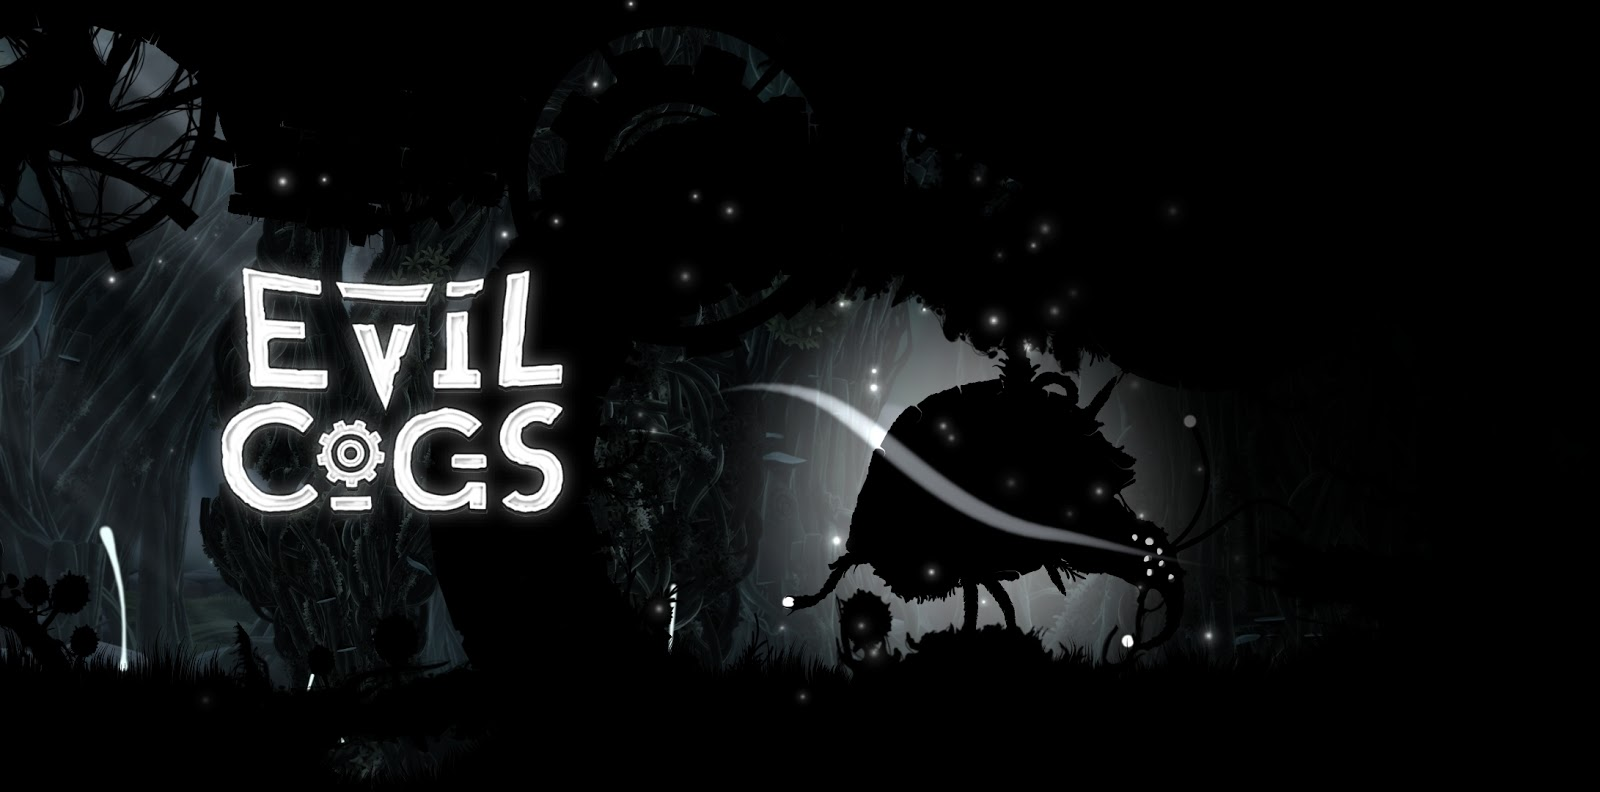 evil cogs review, info game terbaru, kabar game terbaru, berita game terbaru, game petualangan android terbaik, game android terbaik, game ios terbaik, kabar game hari ini, berita game hari ini, download game evil cogs, evil cogs apk,